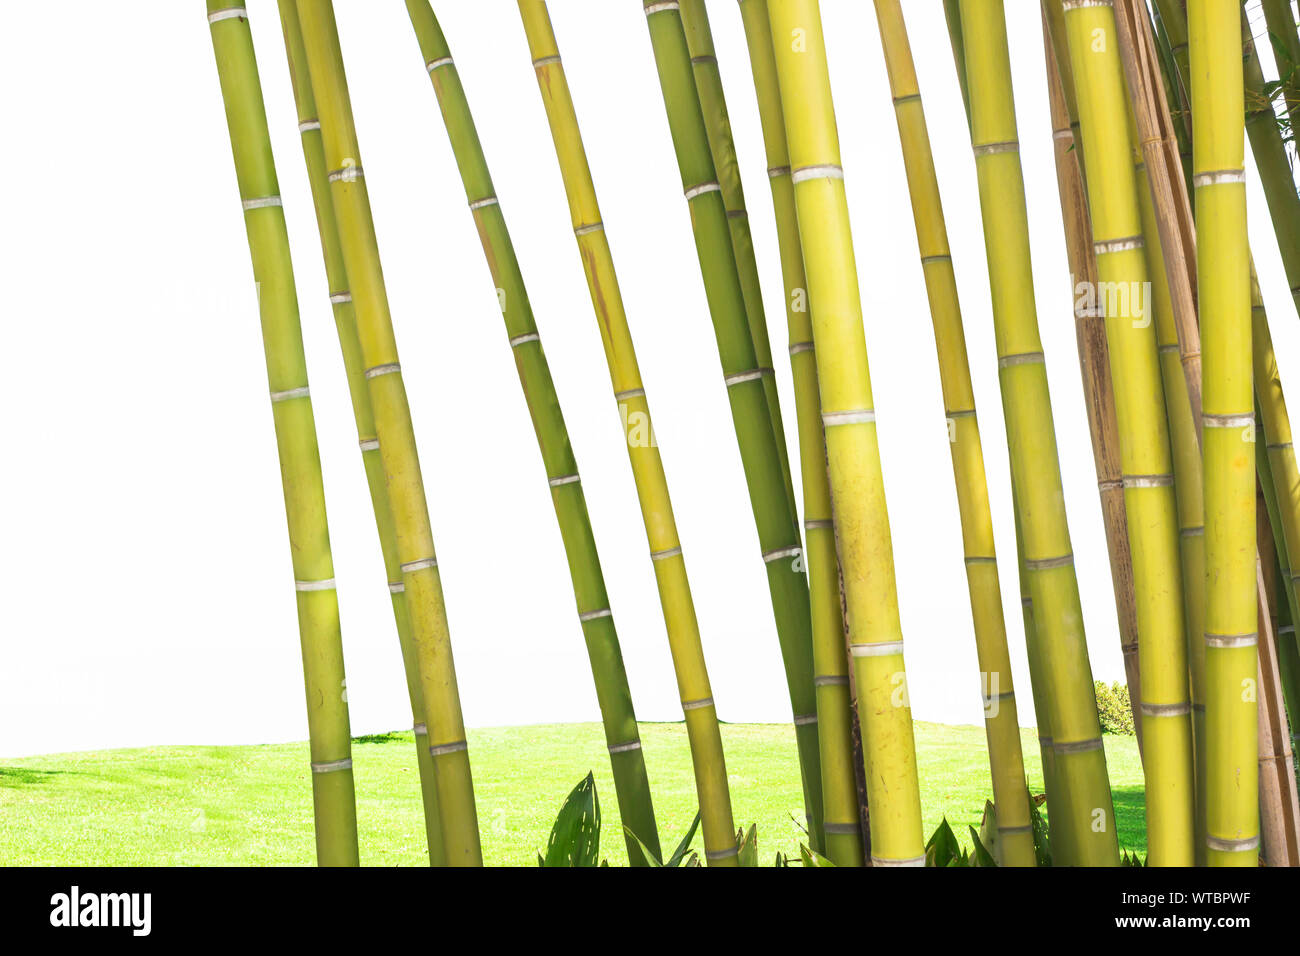 Bamboo branch in bamboo forest, beautiful green and yellow bamboo branch in nature isolated white background. Stock Photo